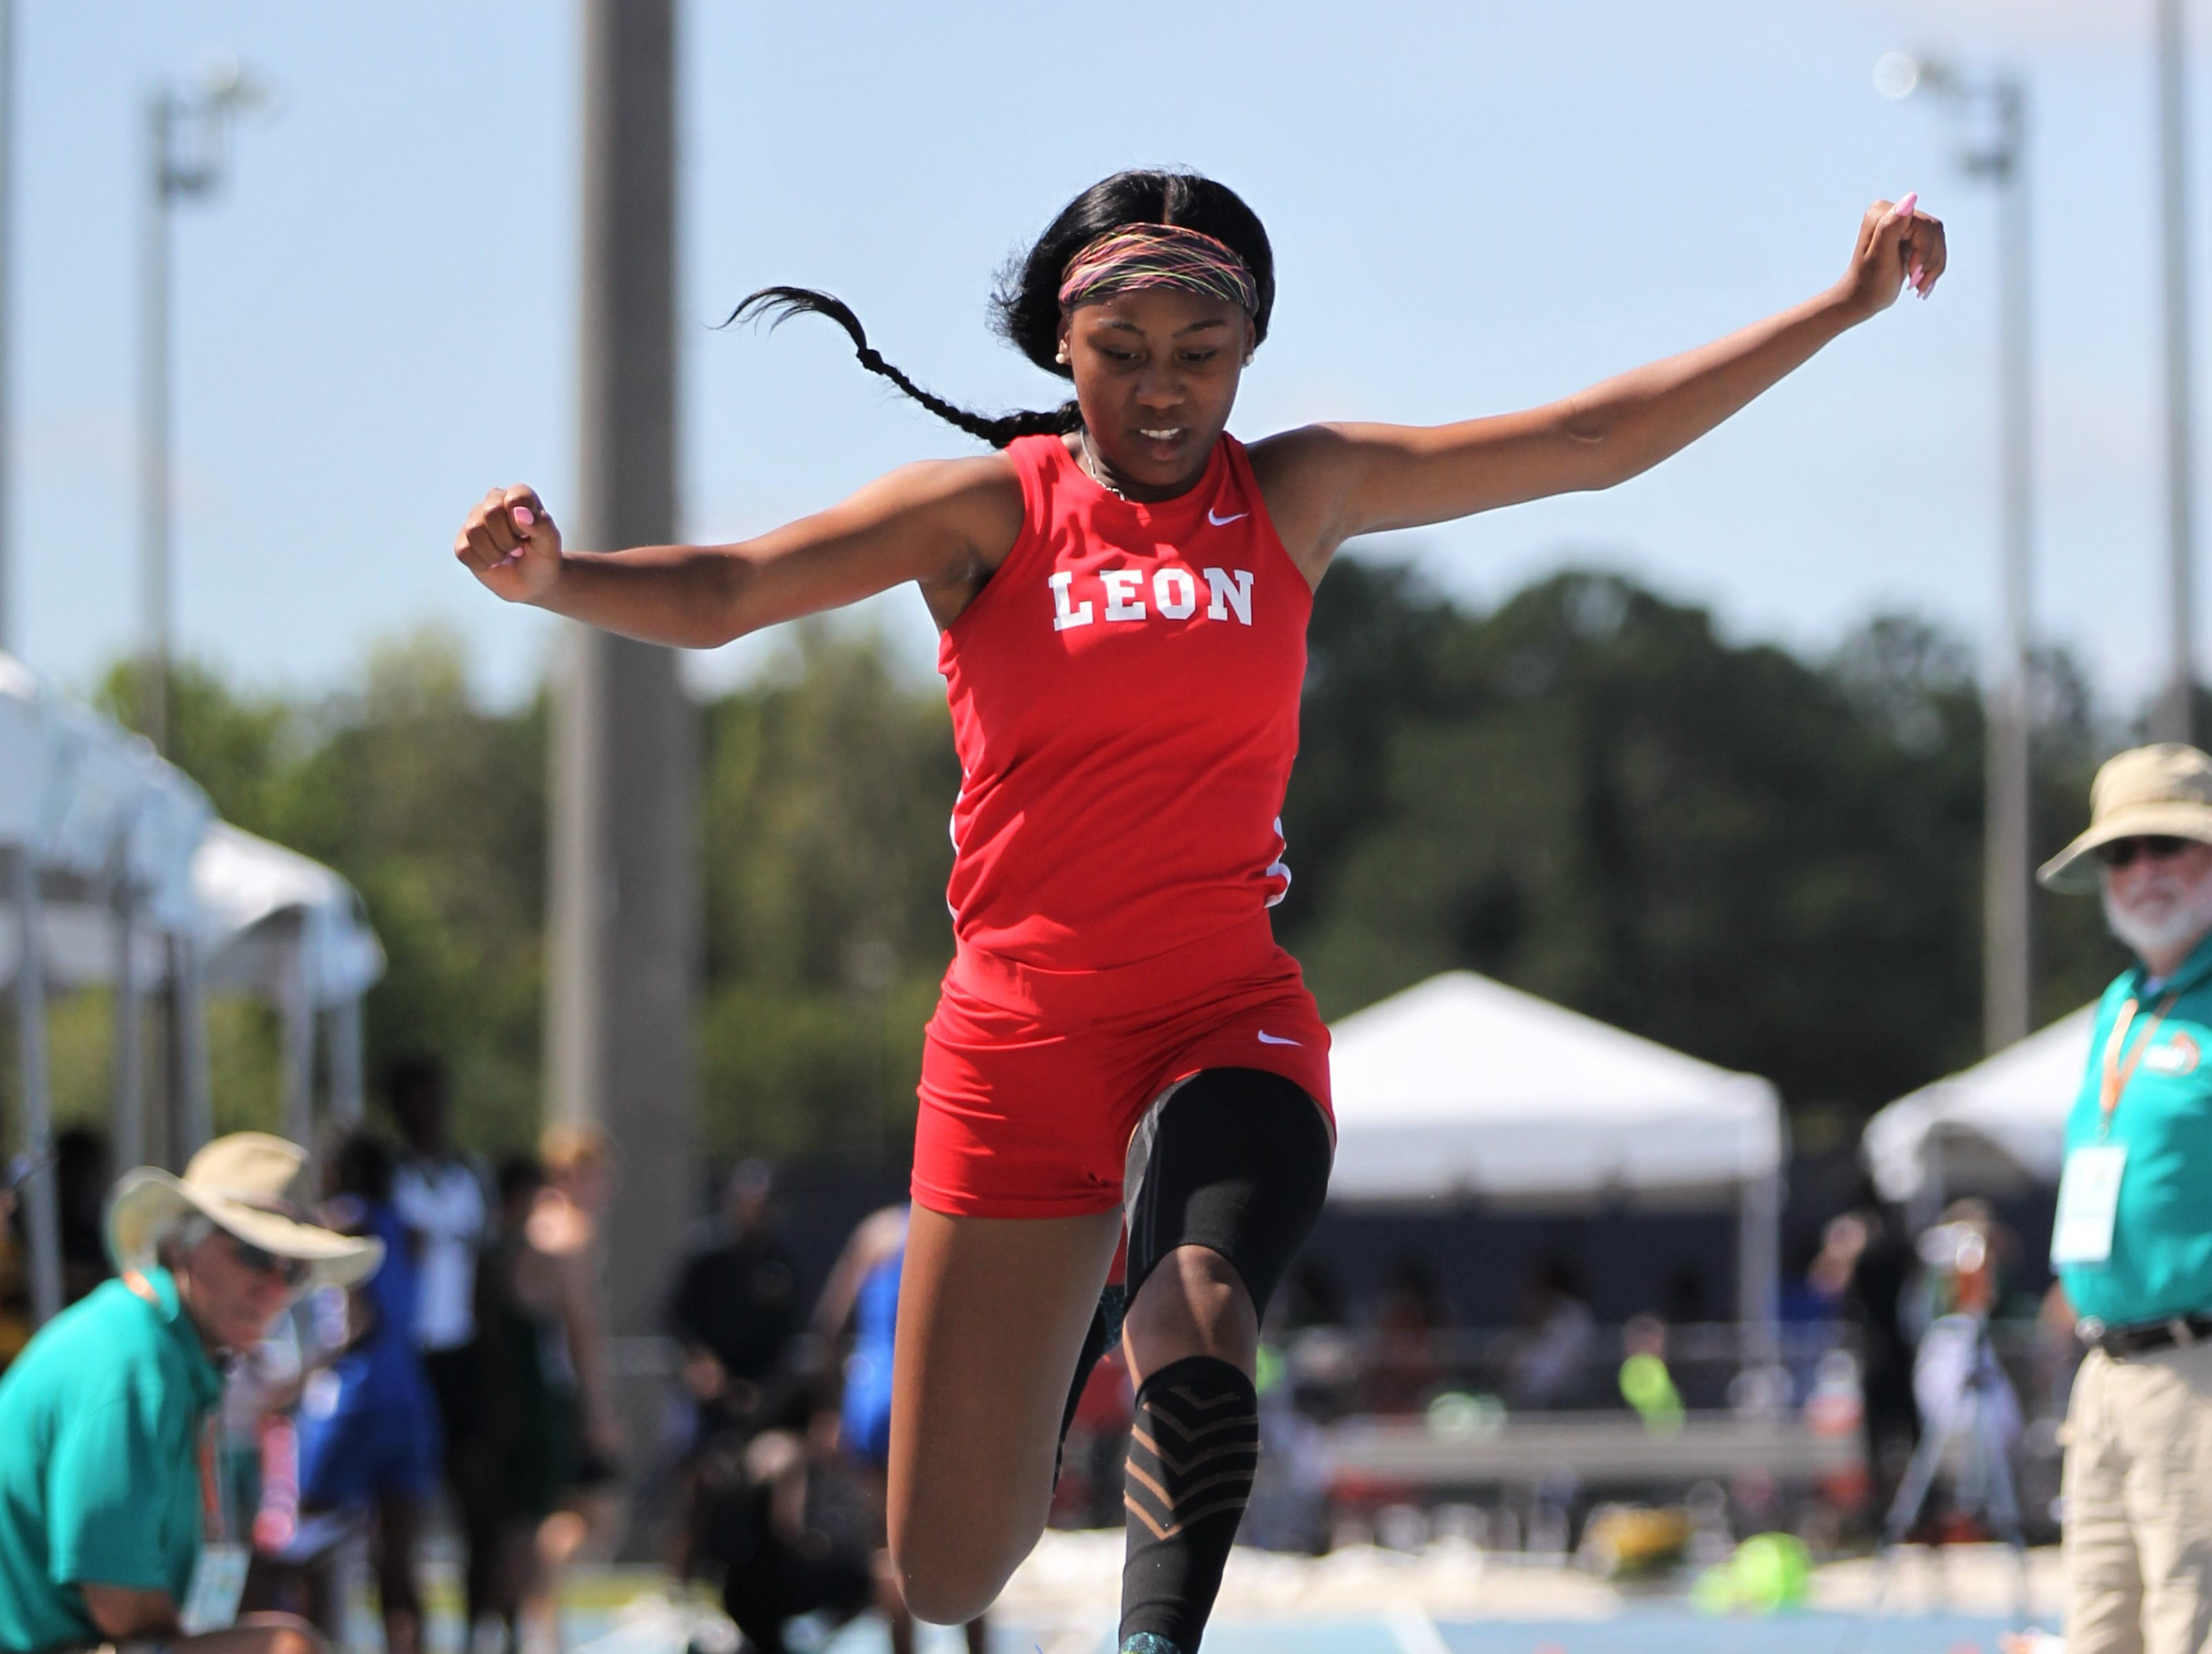 Leon senior Kha'Myah Townsend triple jumps during the FHSAA Track and Field State Championships at UNF's Hodges Stadium in Jacksonville on May 4, 2019.